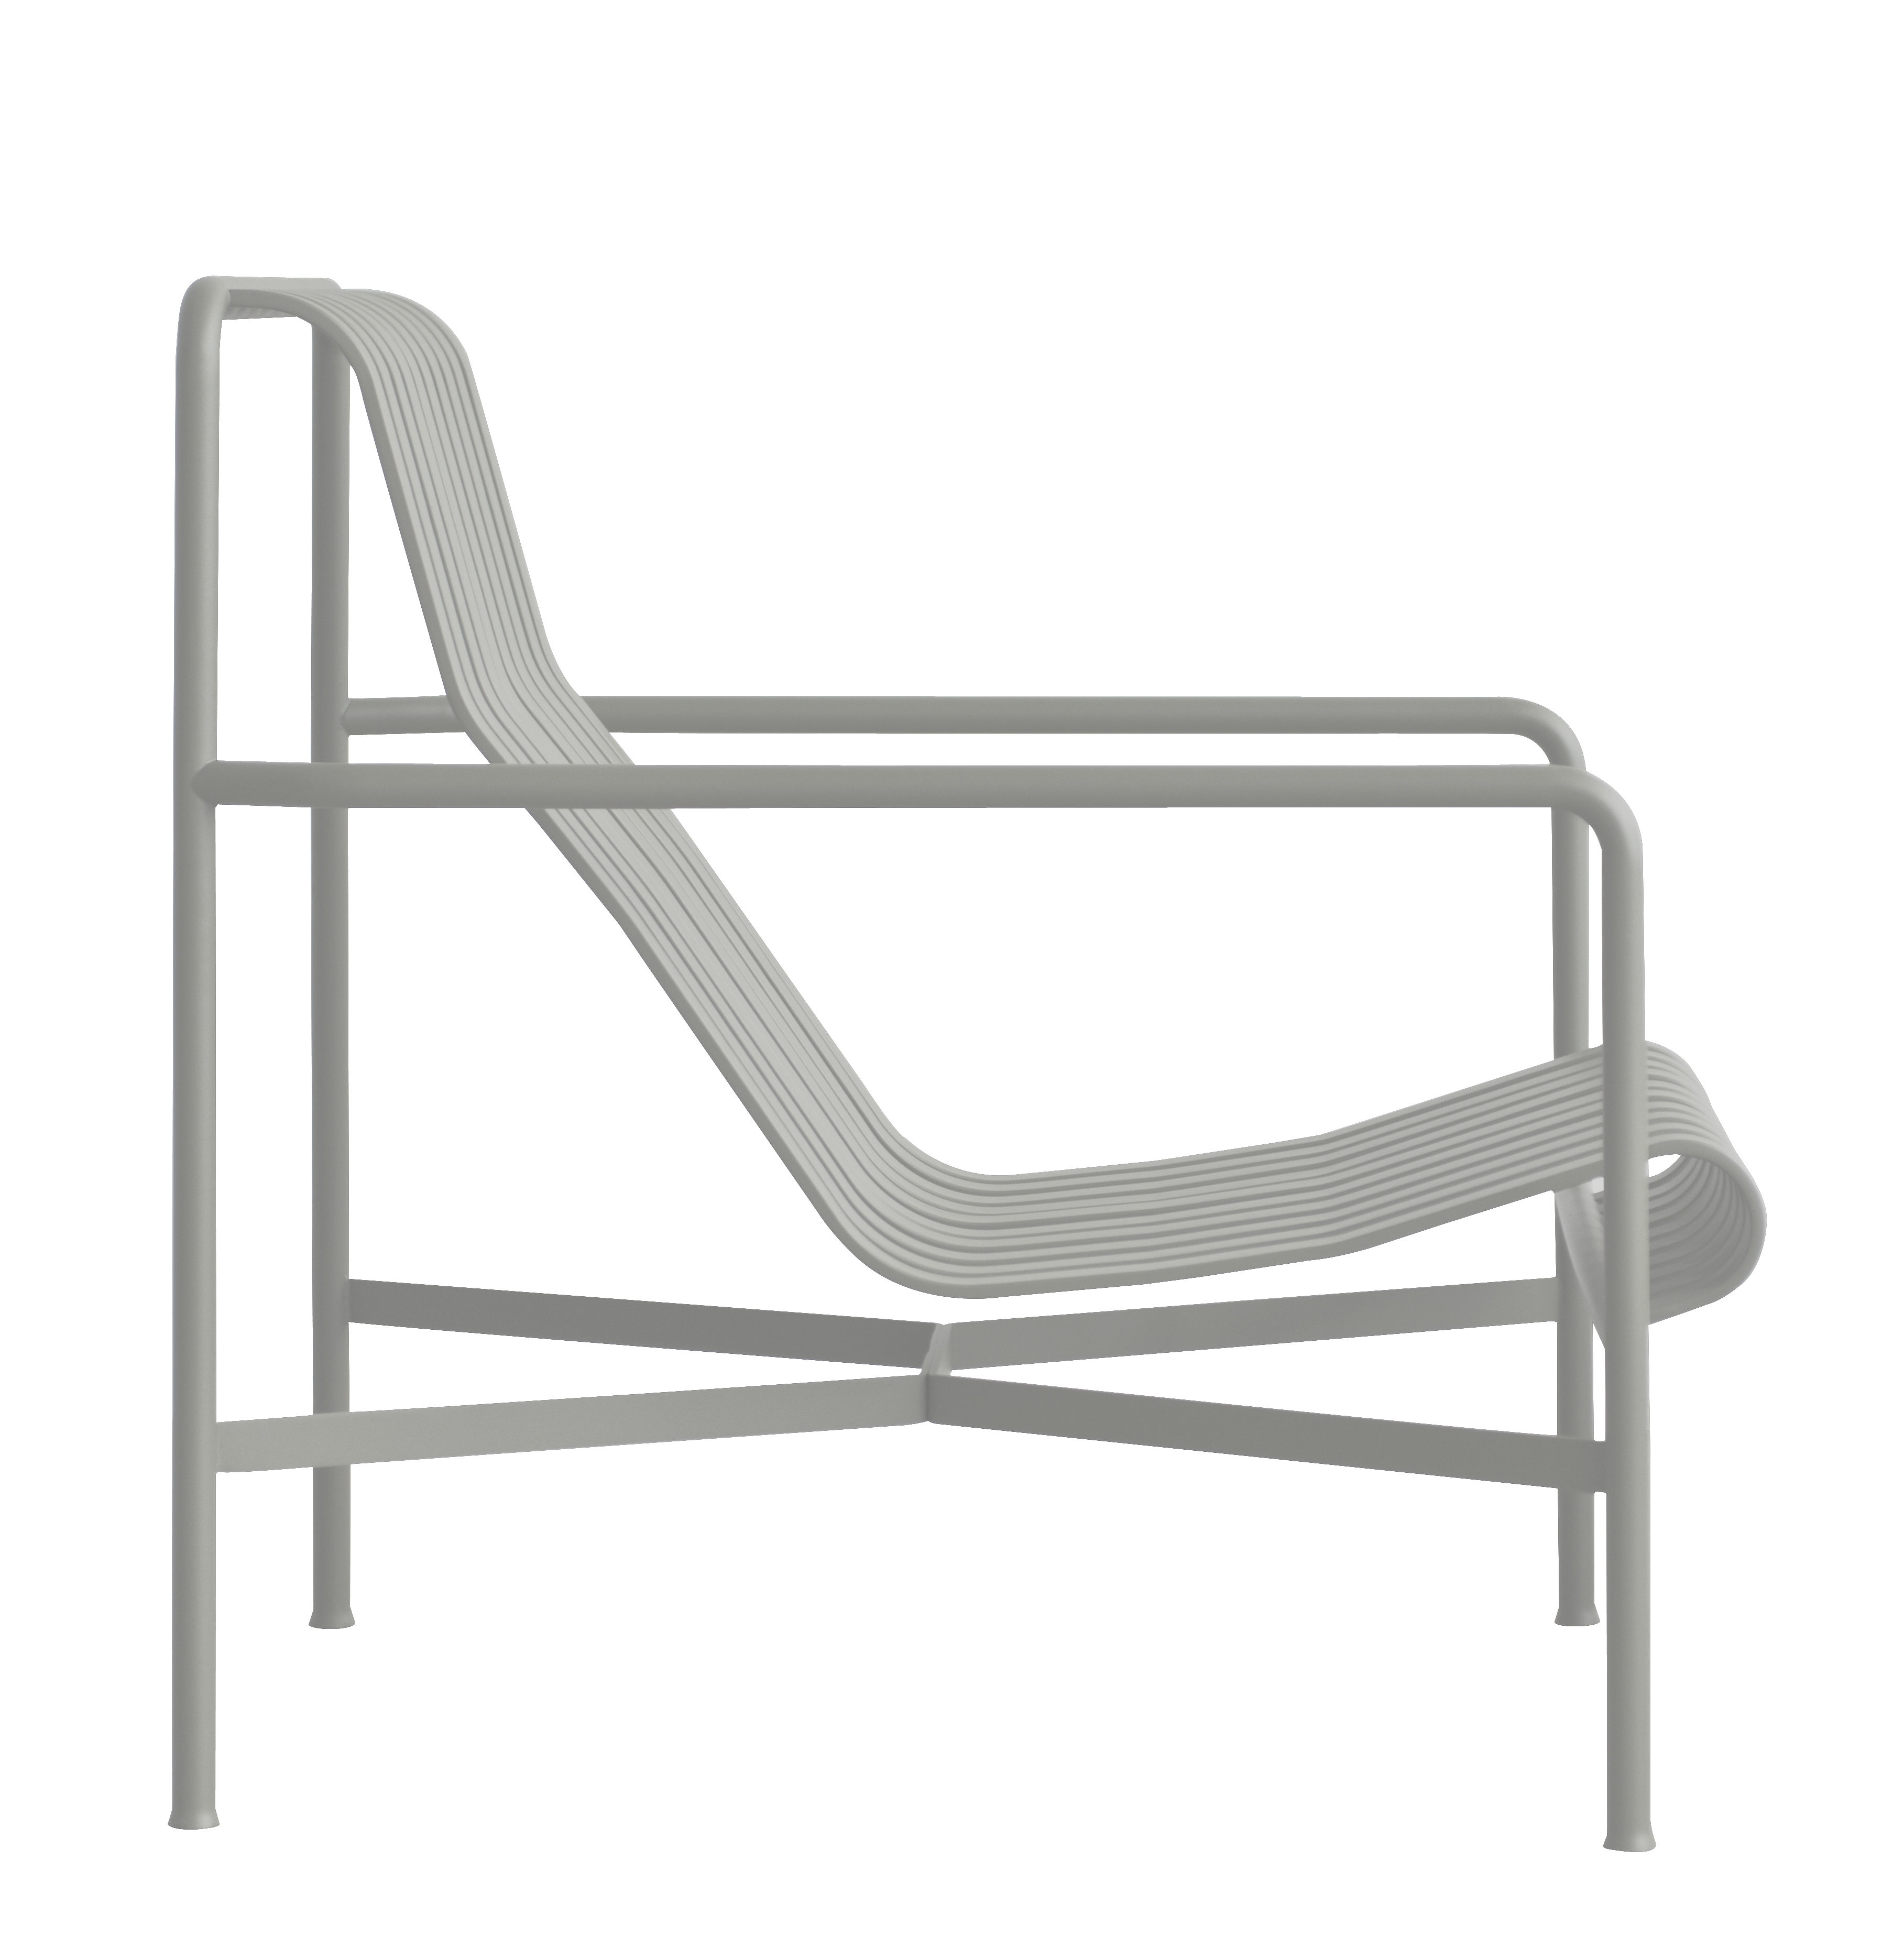 Fauteuil bas palissade dossier haut r e bouroullec gris clair hay - Fauteuil made in design ...